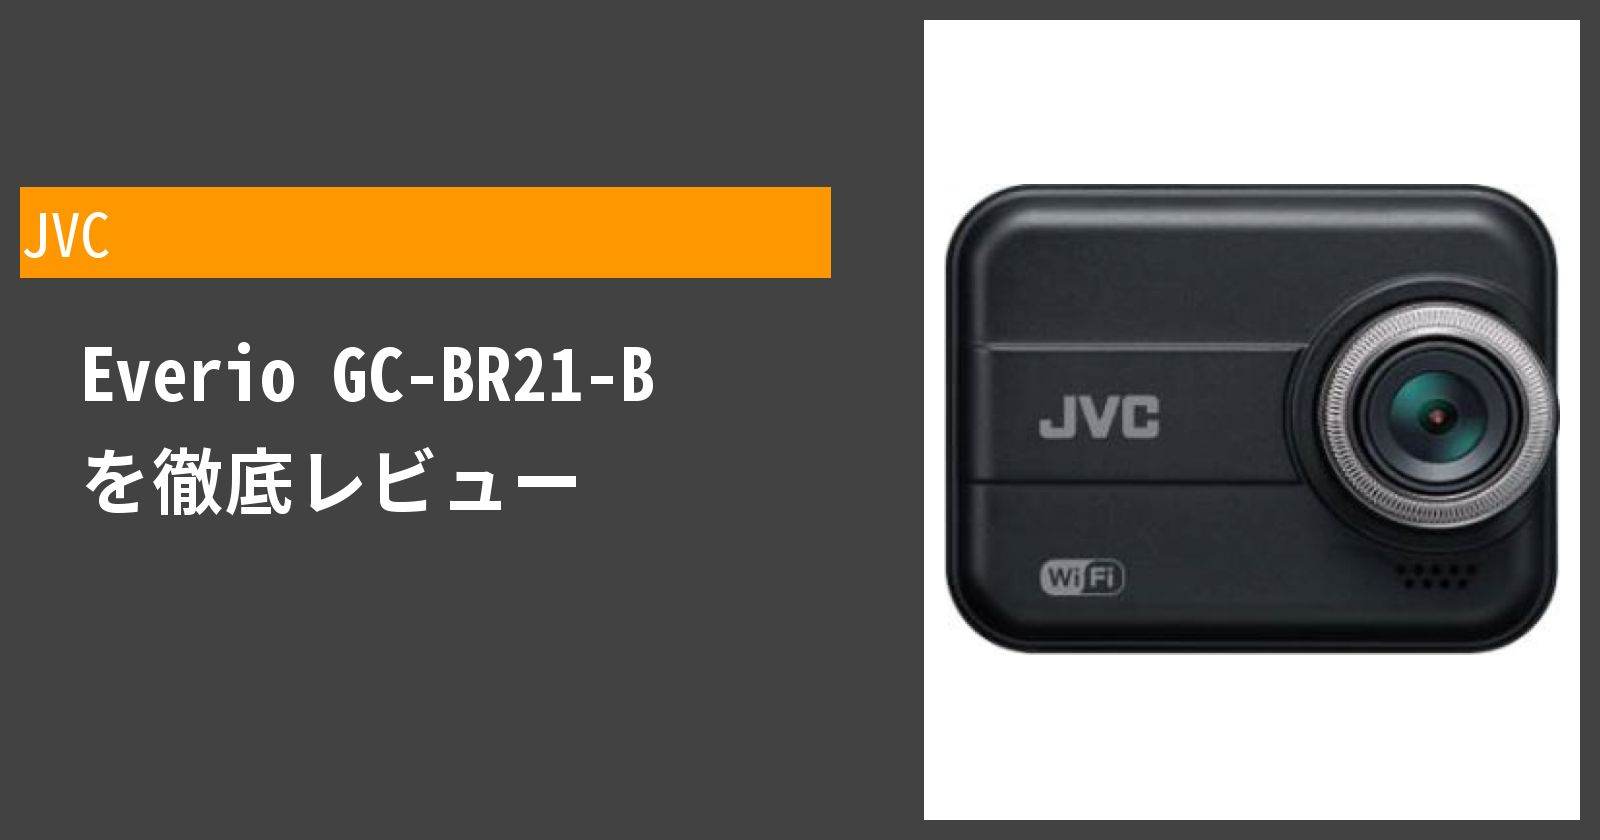 Everio GC-BR21-Bを徹底評価